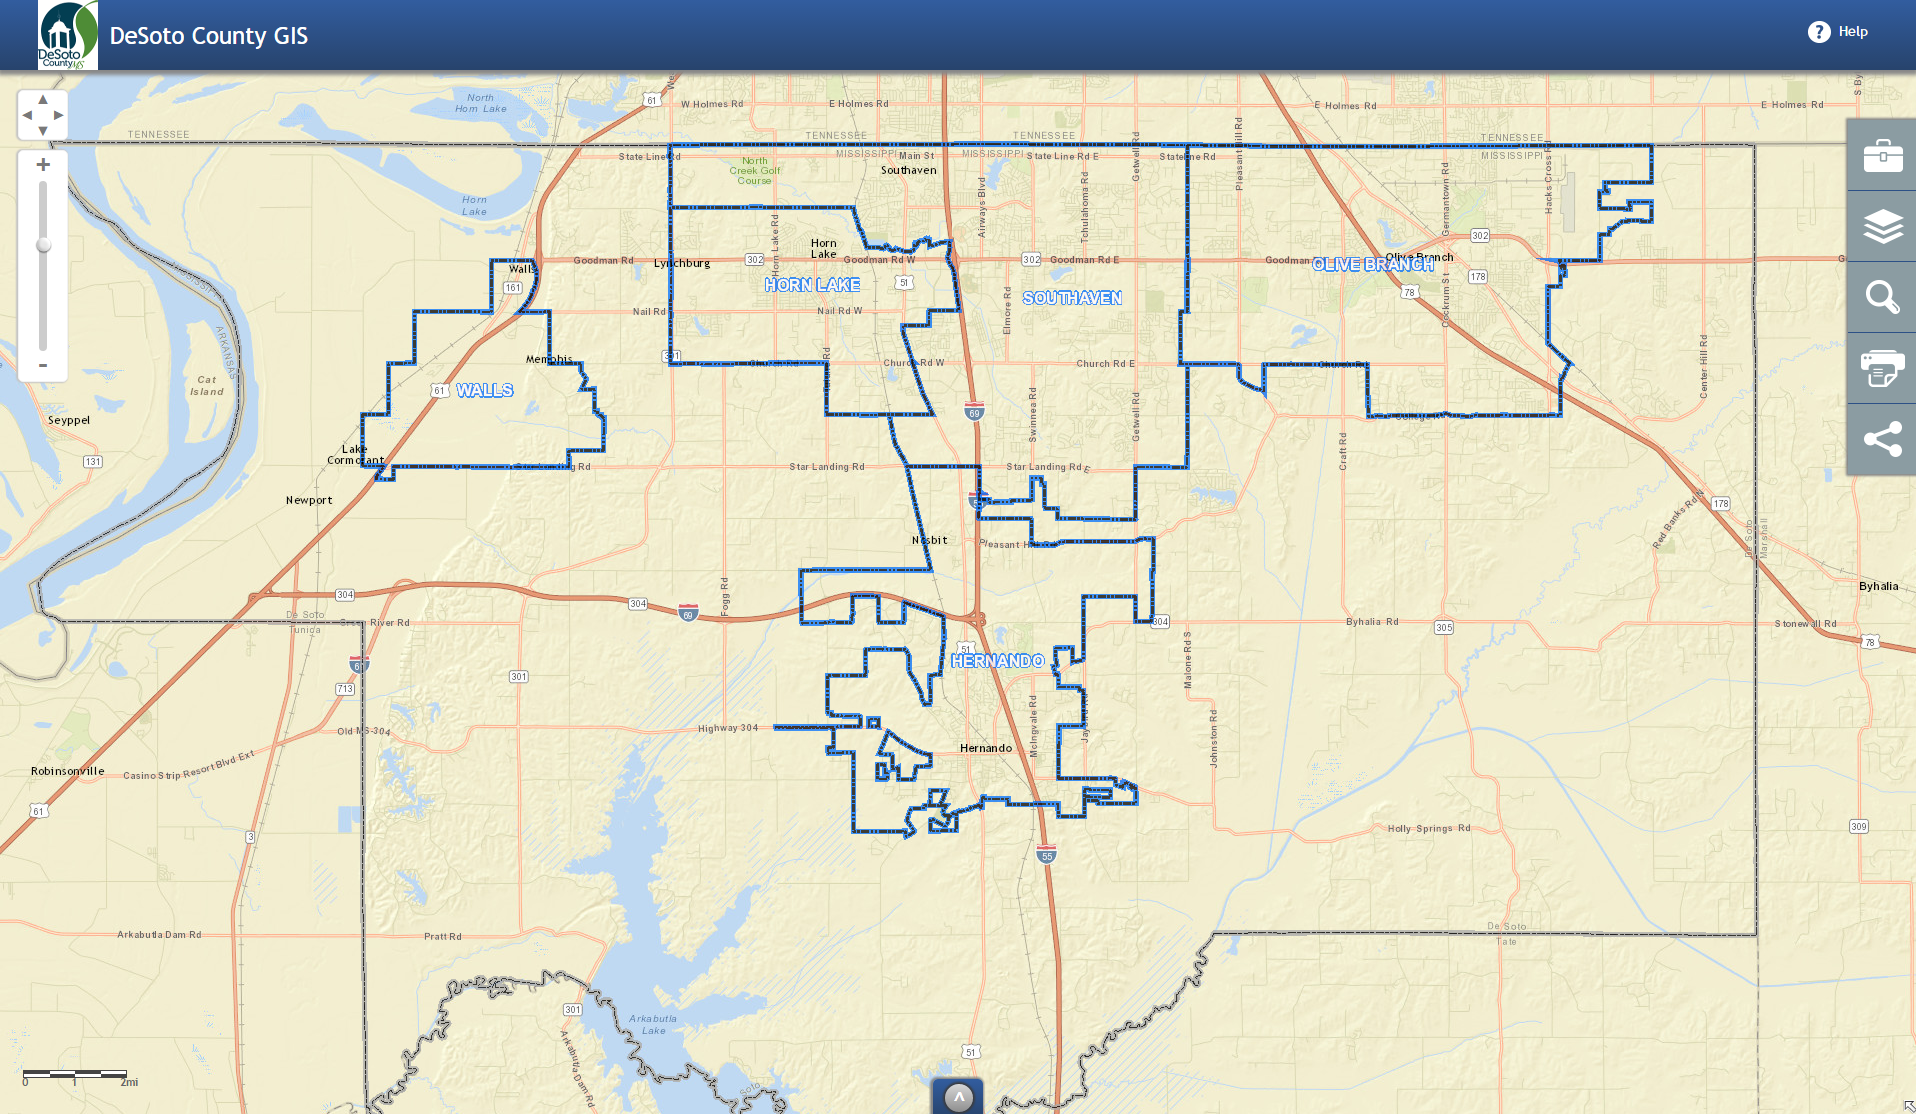 OneView DeSoto County Interactive Map